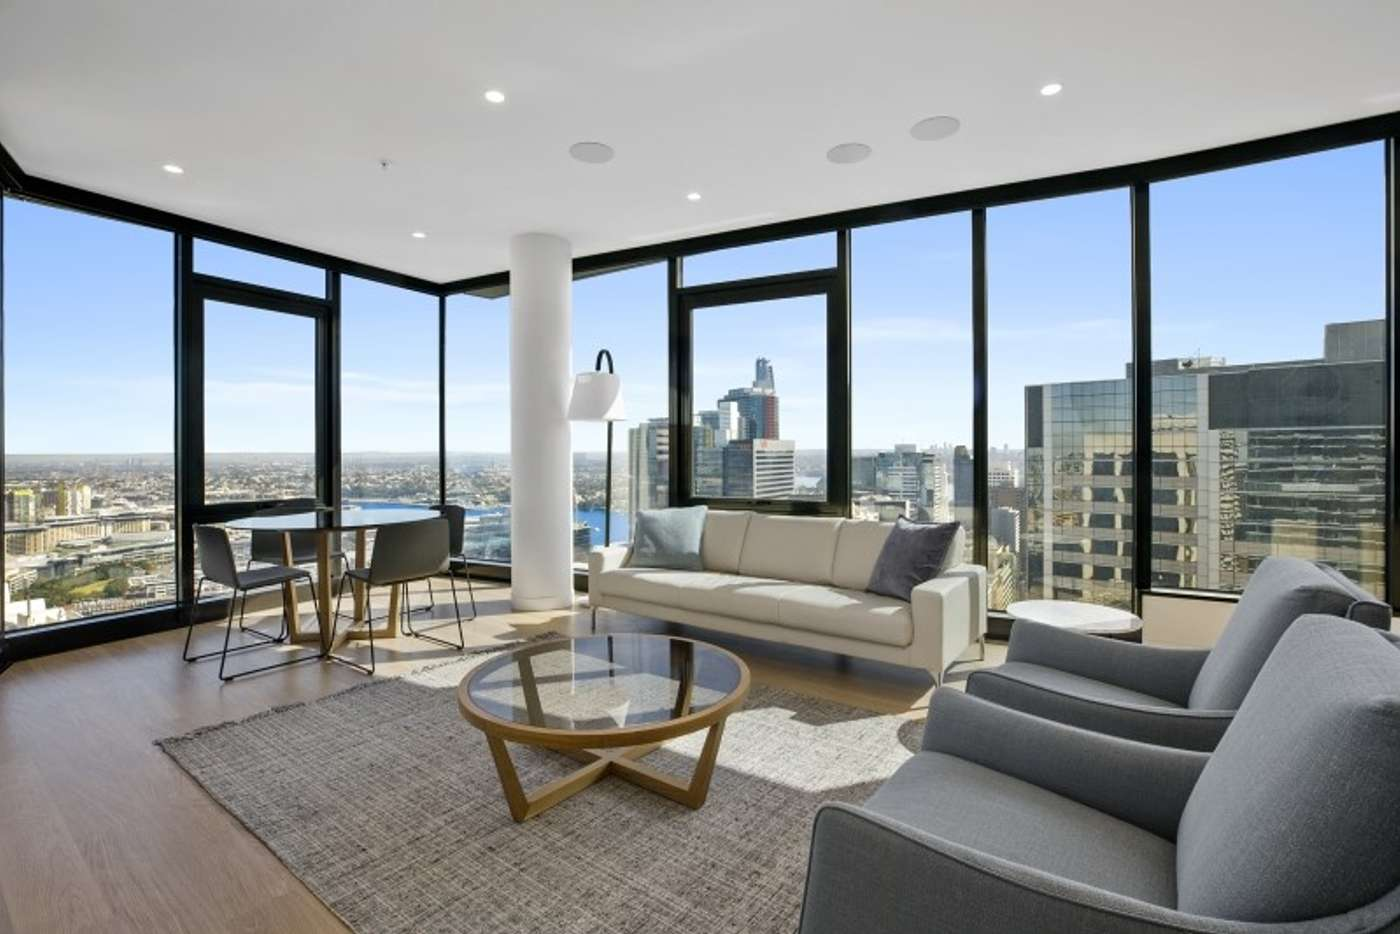 Main view of Homely apartment listing, 38 York St, Sydney NSW 2000